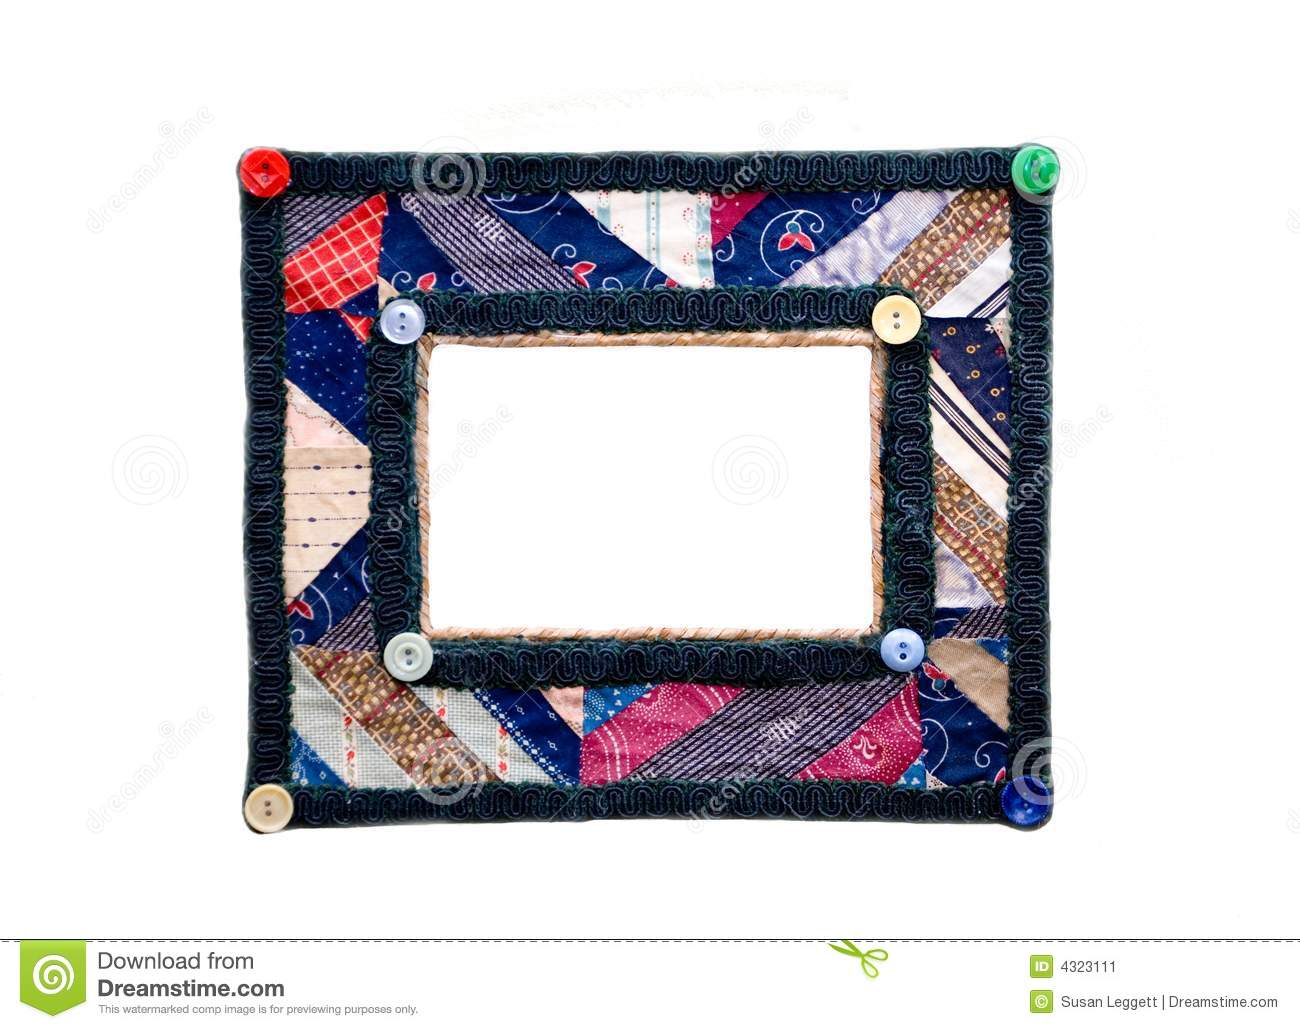 Colorful picture frame/quilt